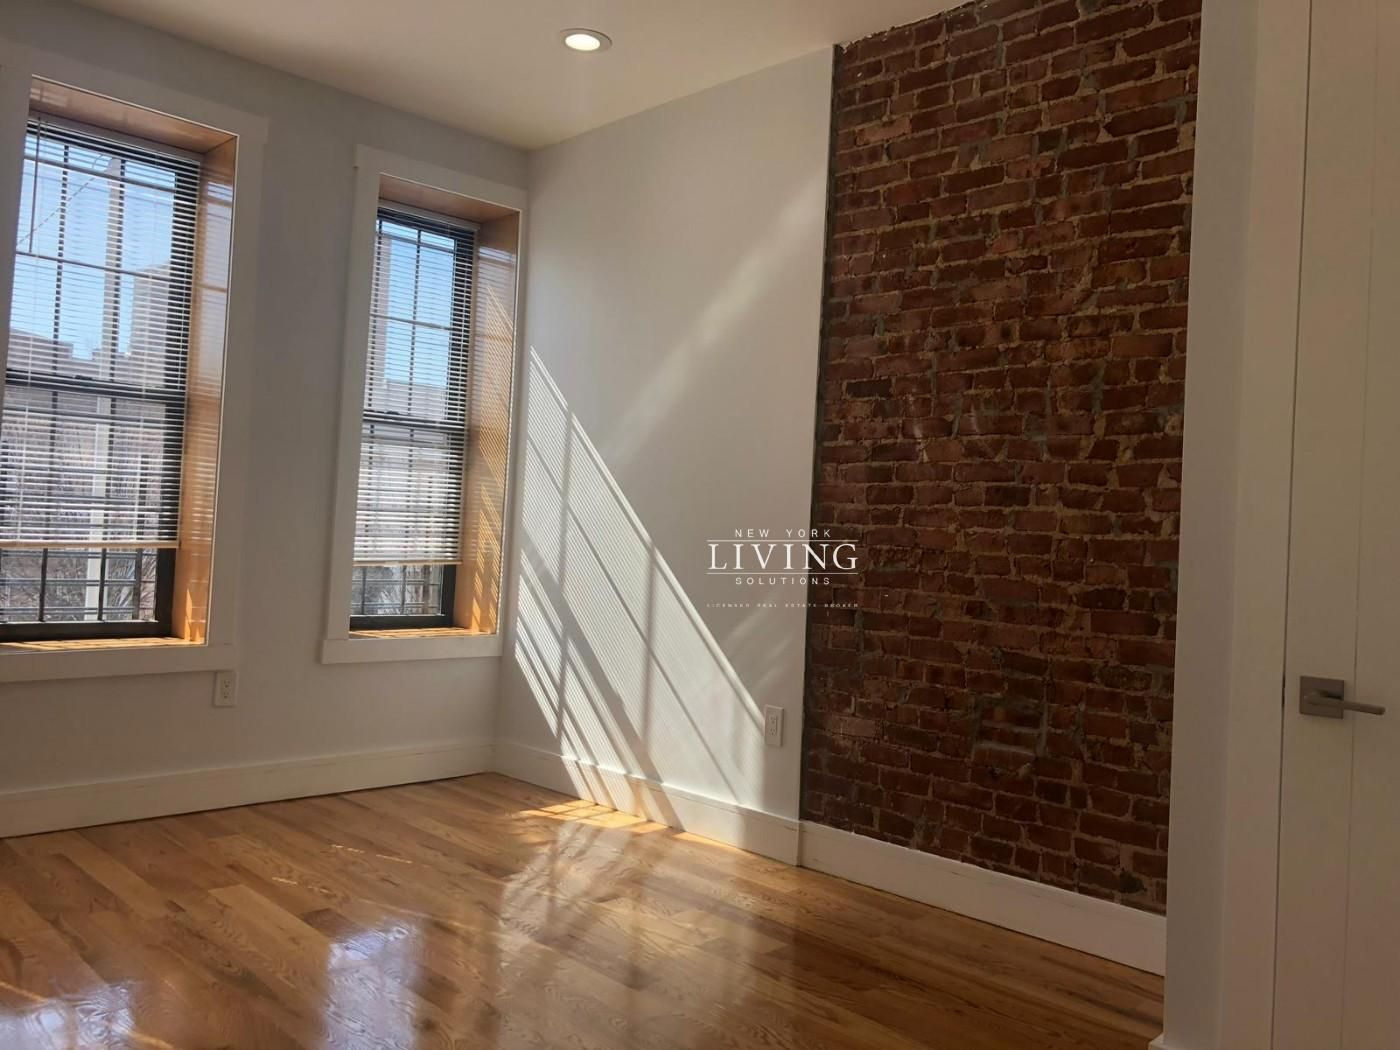 3 Bedrooms 2 Bathrooms Apartment for Sale in Ocean Hill